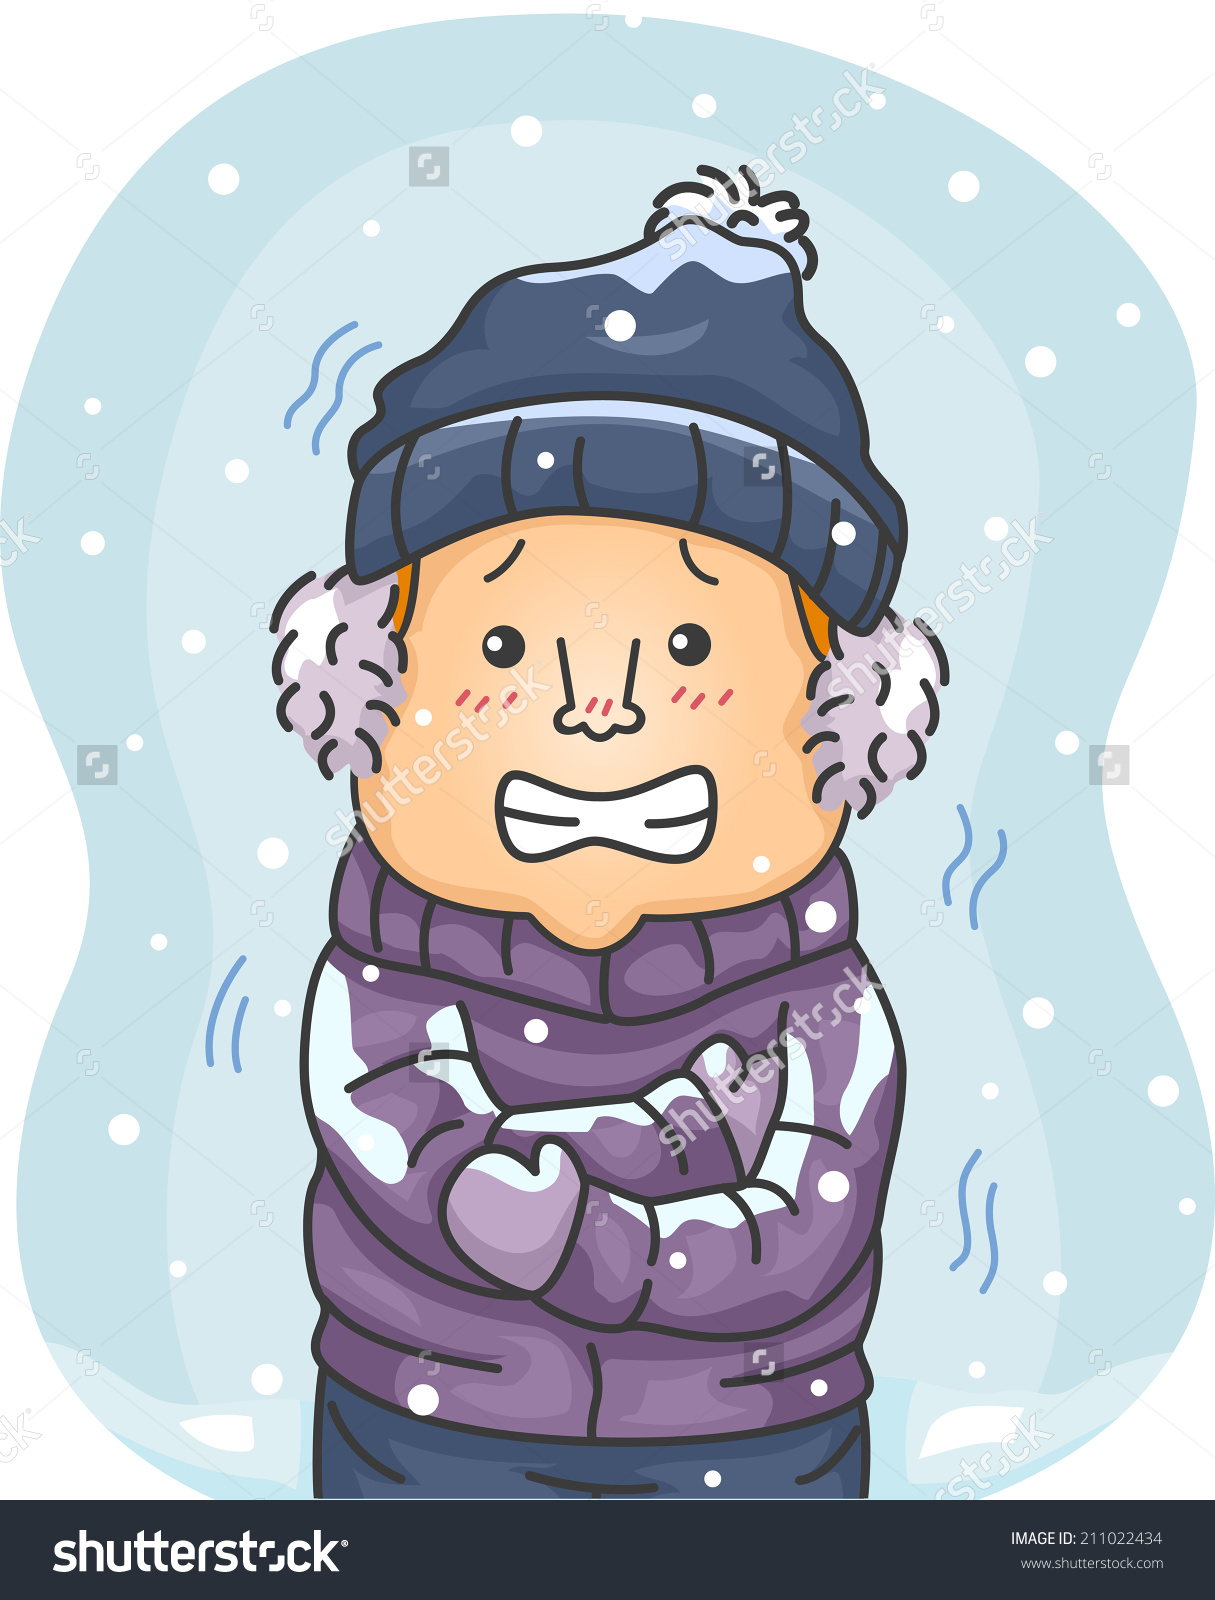 Coldness clipart #2, Download drawings